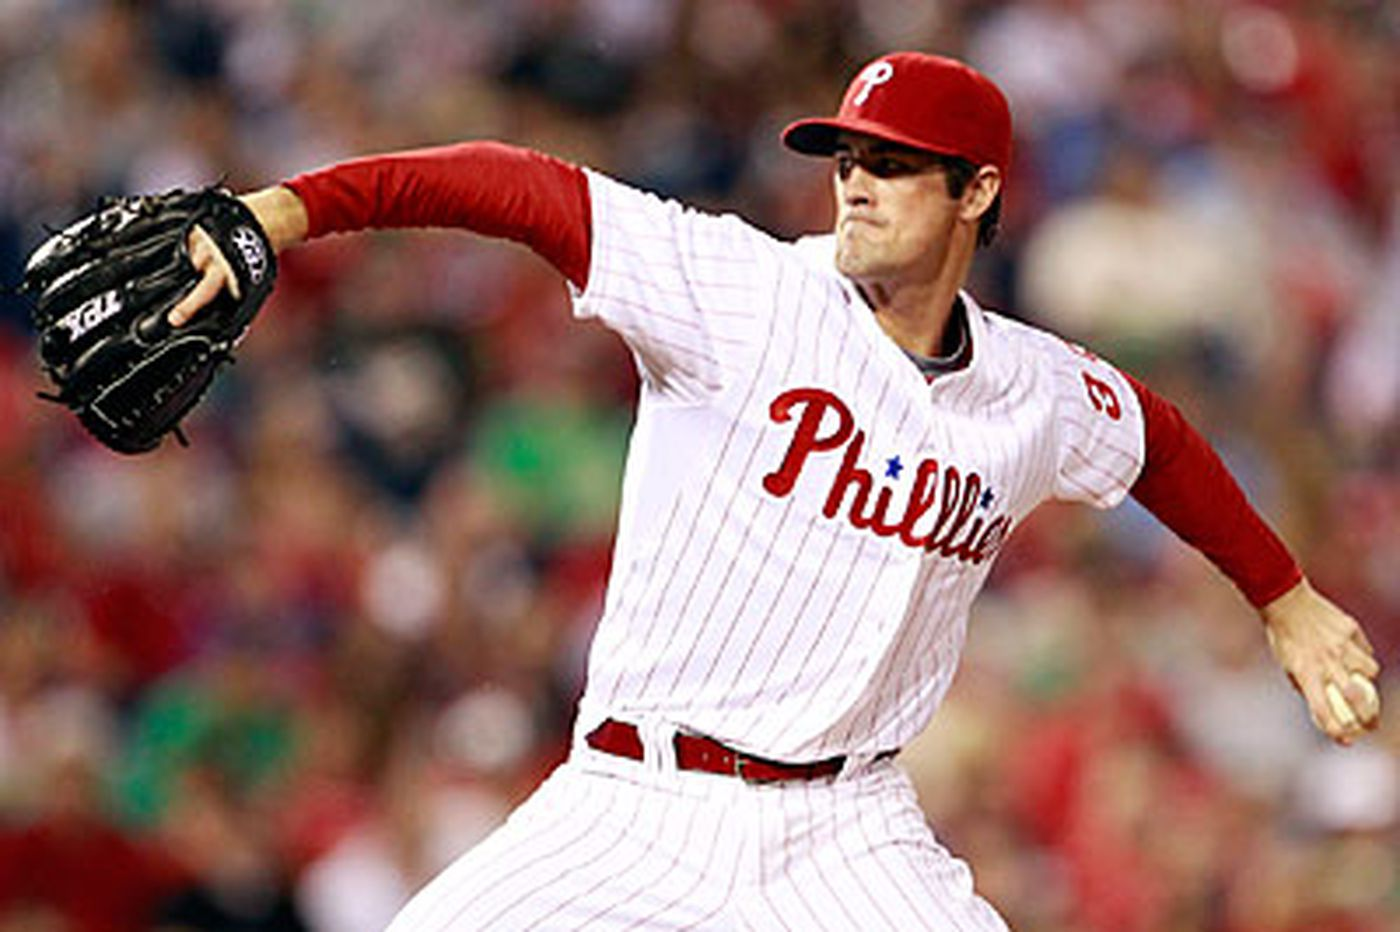 Inside the Phillies: Hamels' start Saturday could be his last as Phillie